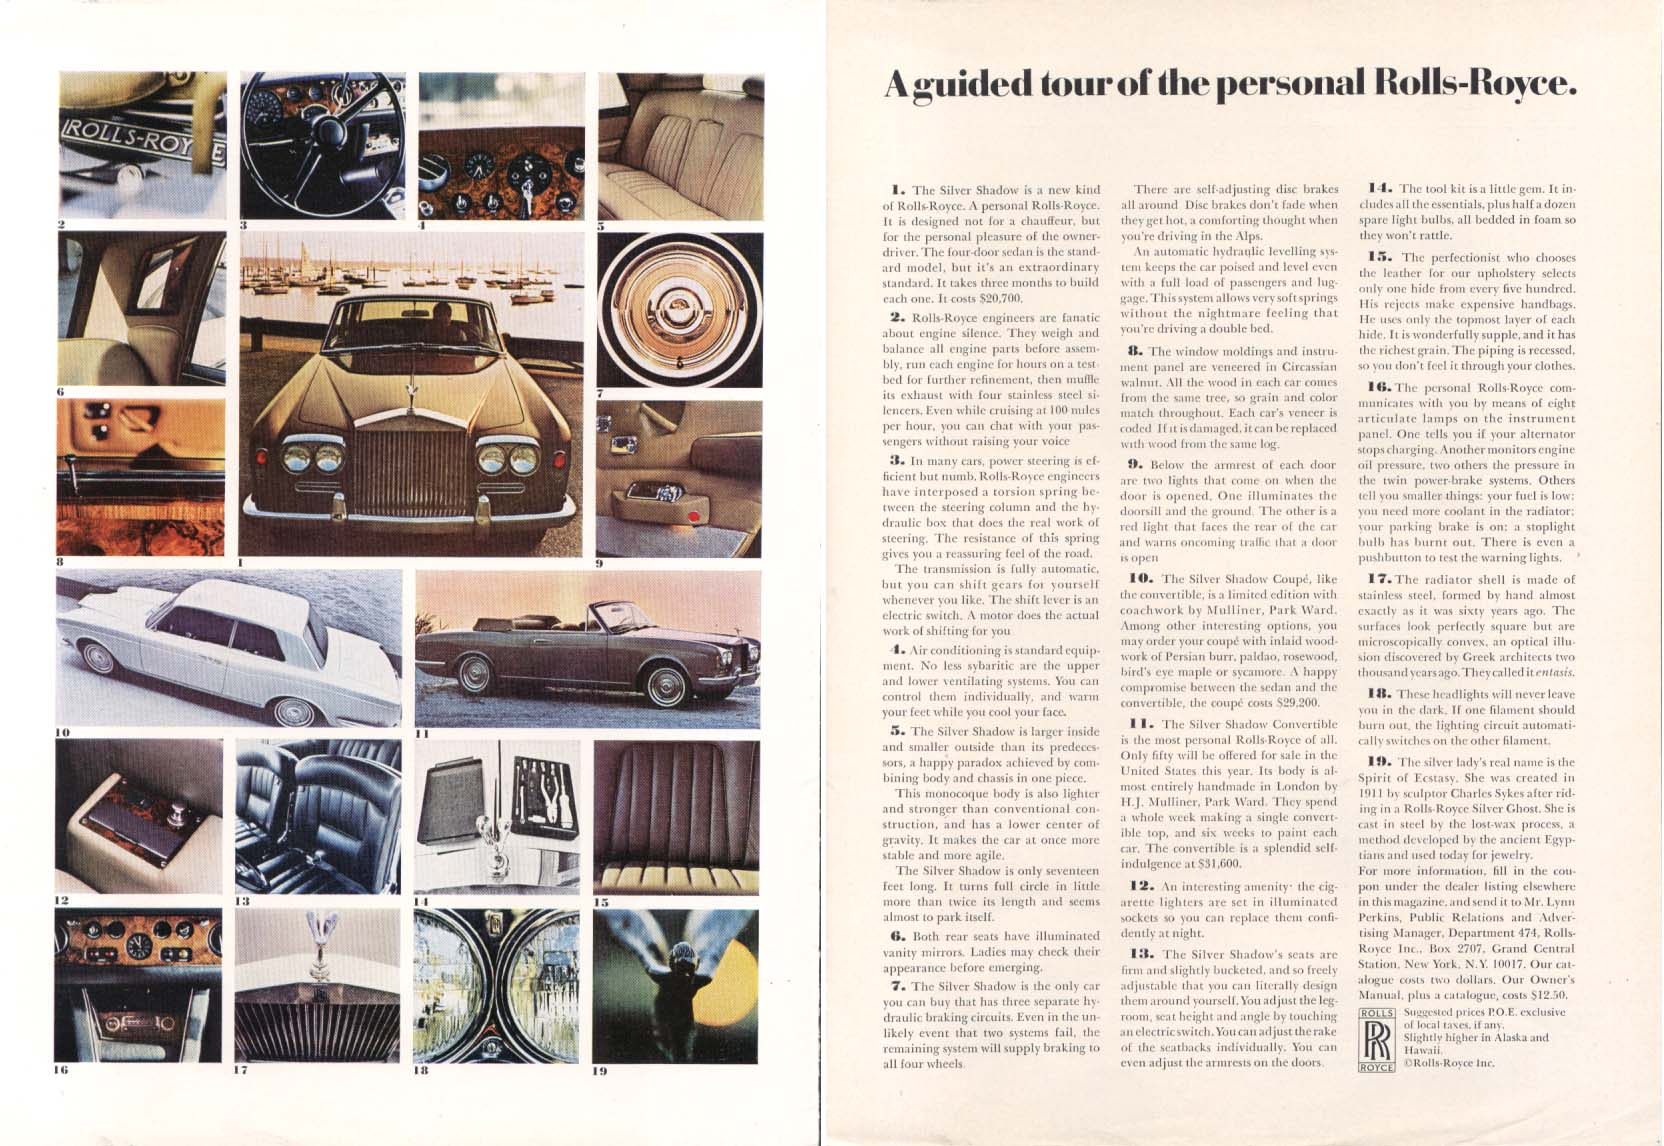 A guided tour of the personal Rolls-Royce ad 1970